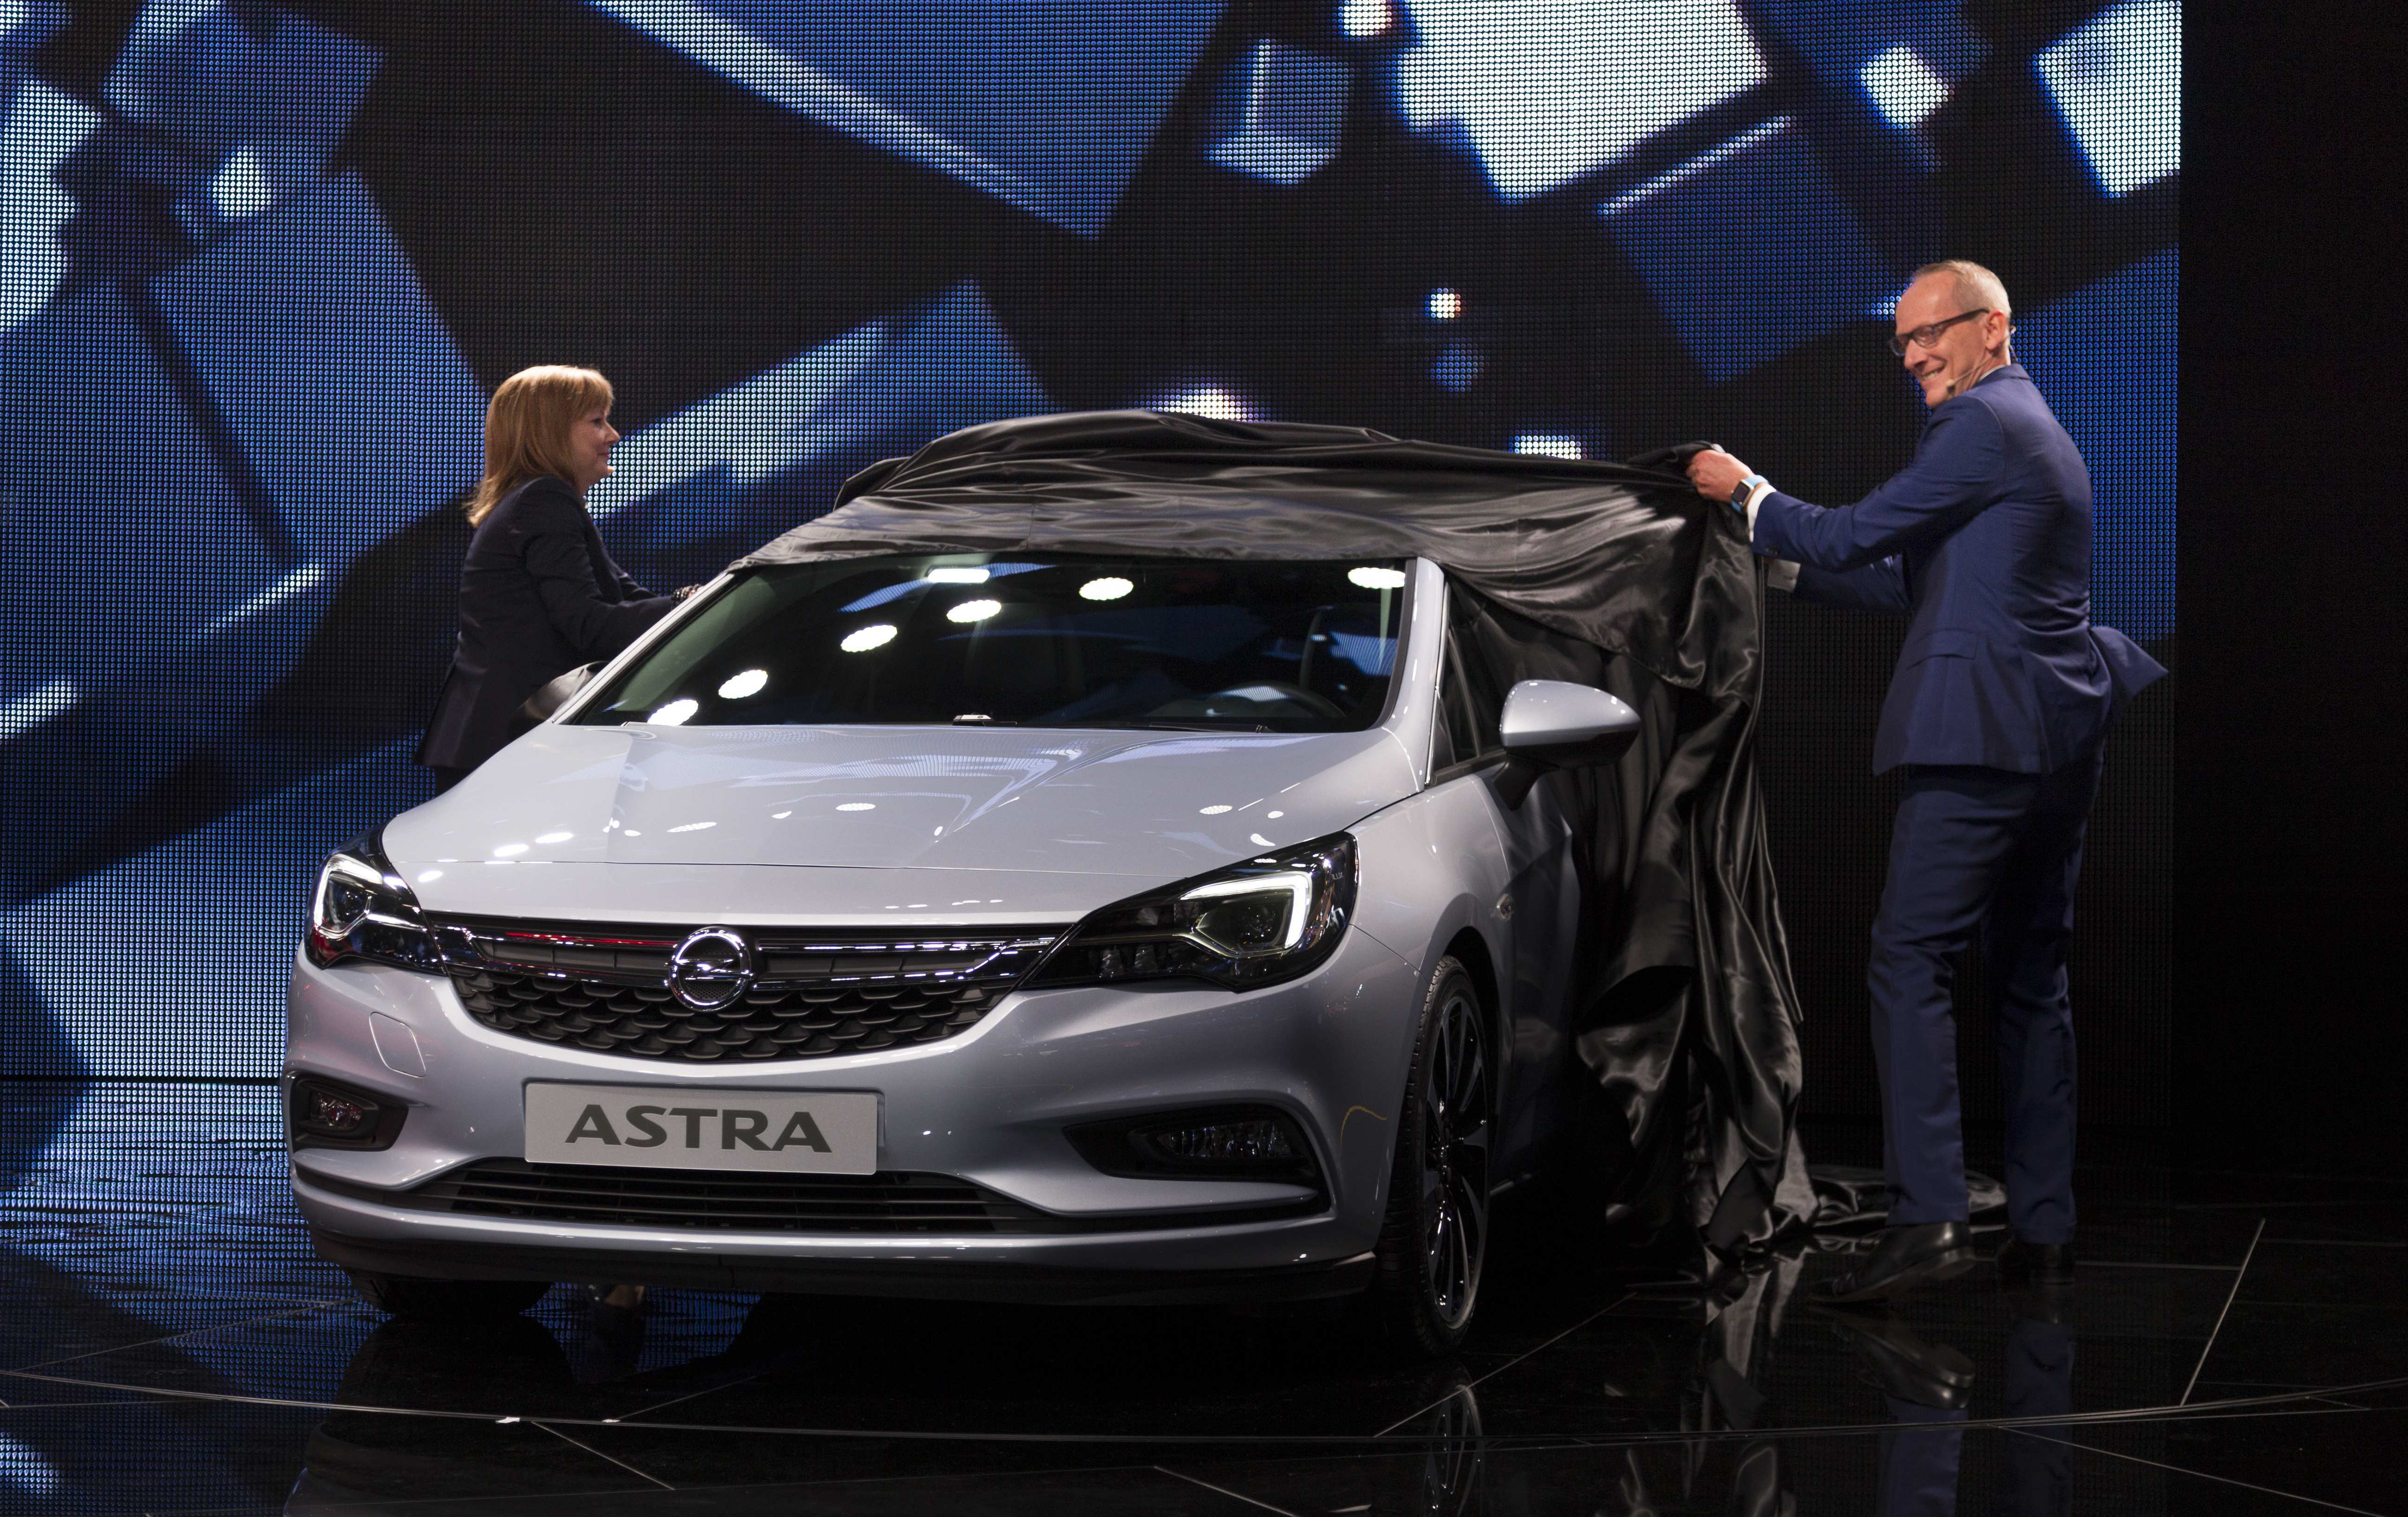 12 New Opel Astra Yeni Kasa 2020 Pricing for Opel Astra Yeni Kasa 2020